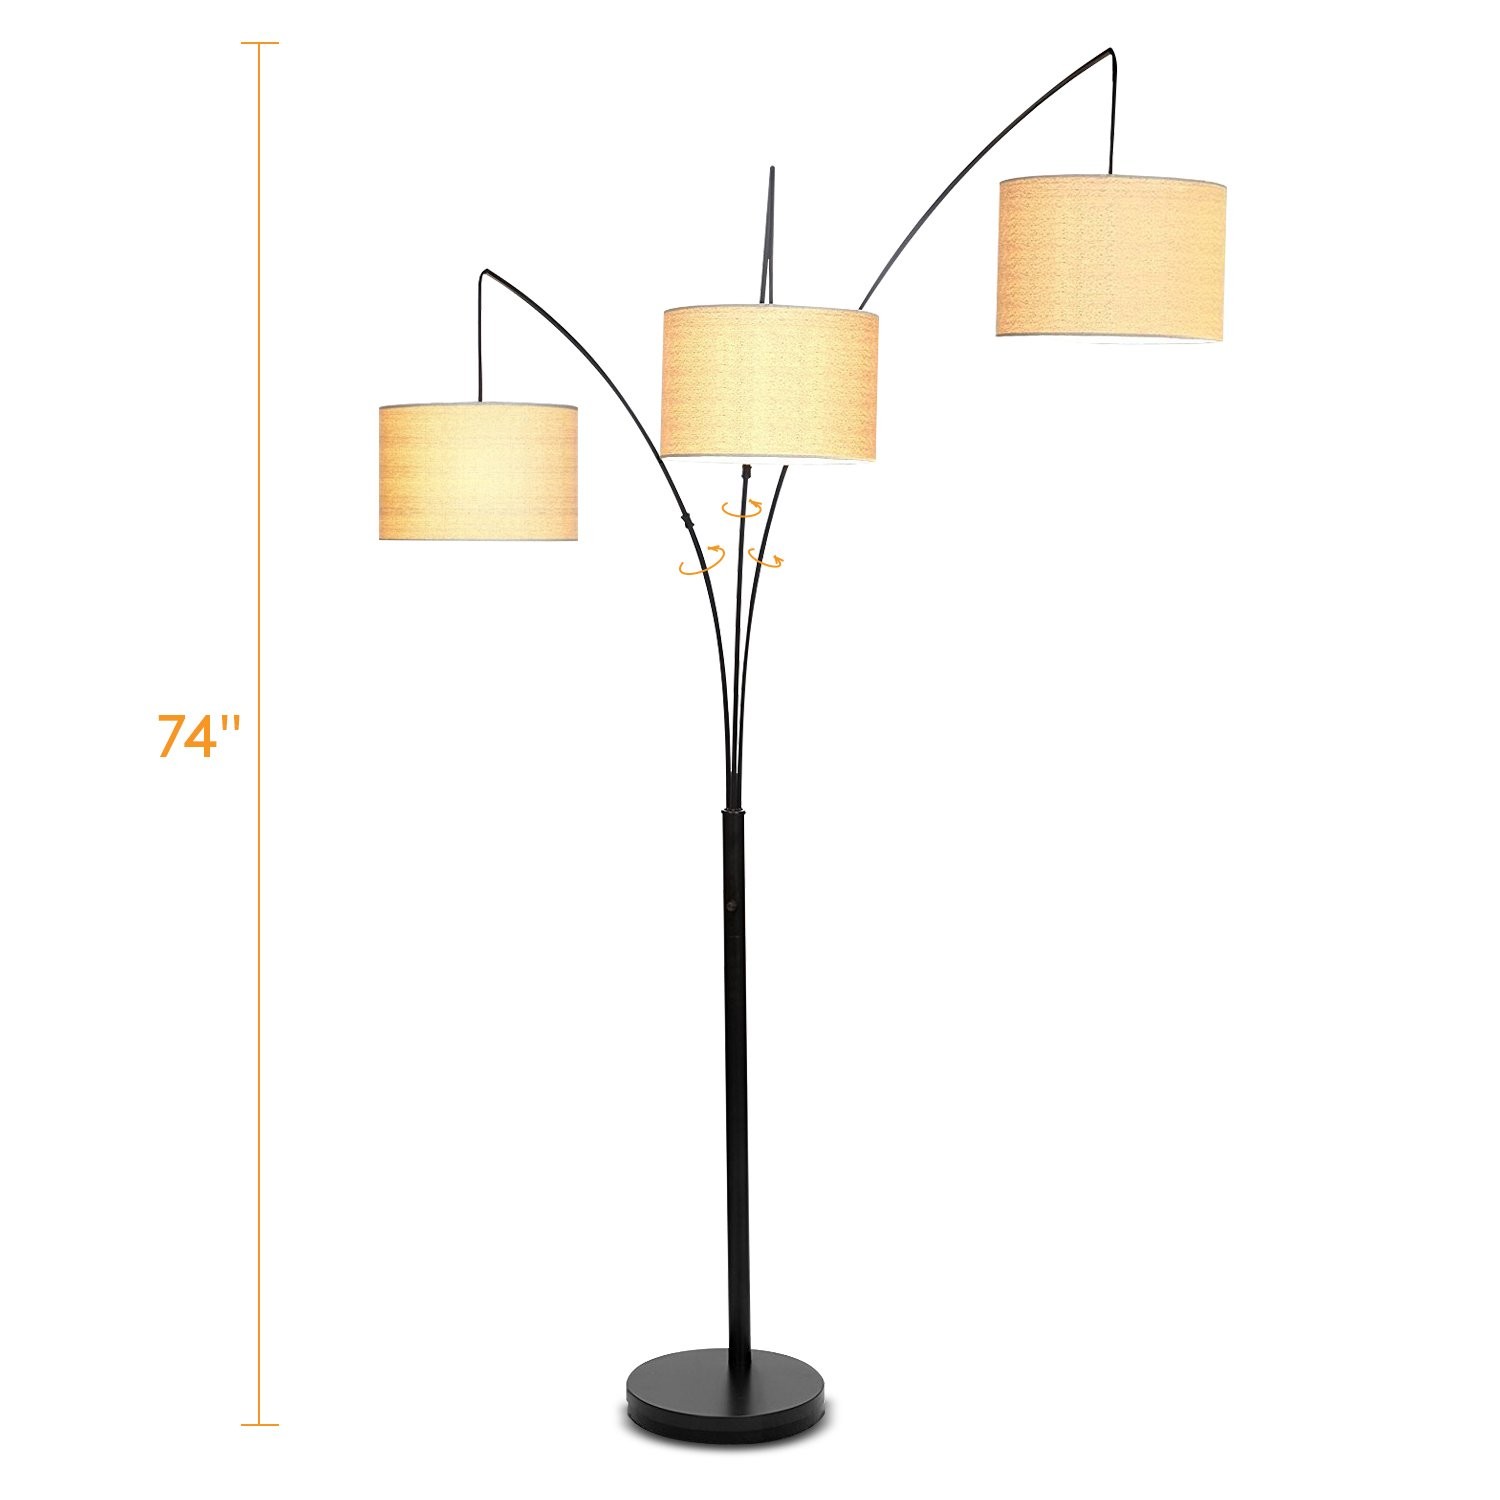 Brightech Trilage LED 3 Arc Floor Lamp – Living Room Standing Light with Hanging Shades - Tall Modern Lamp for Family Room or Bedroom - Black by Brightech (Image #6)